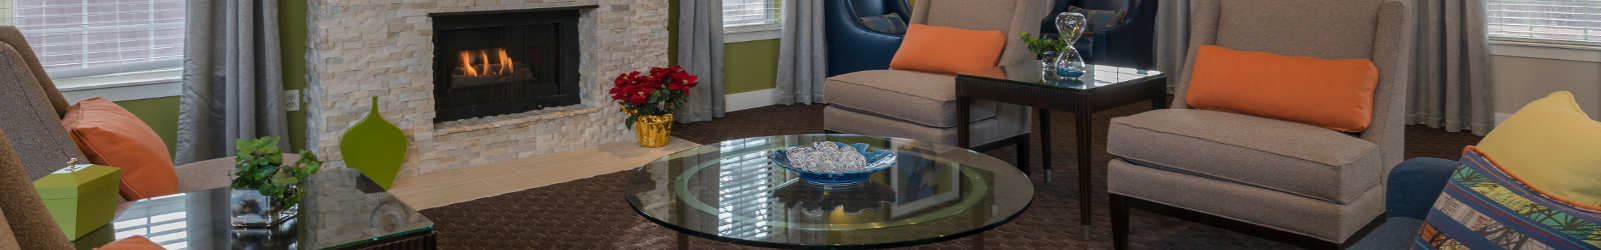 Contact Ponds at Georgetown Apartments about luxury apartment community living in Ann Arbor, MI